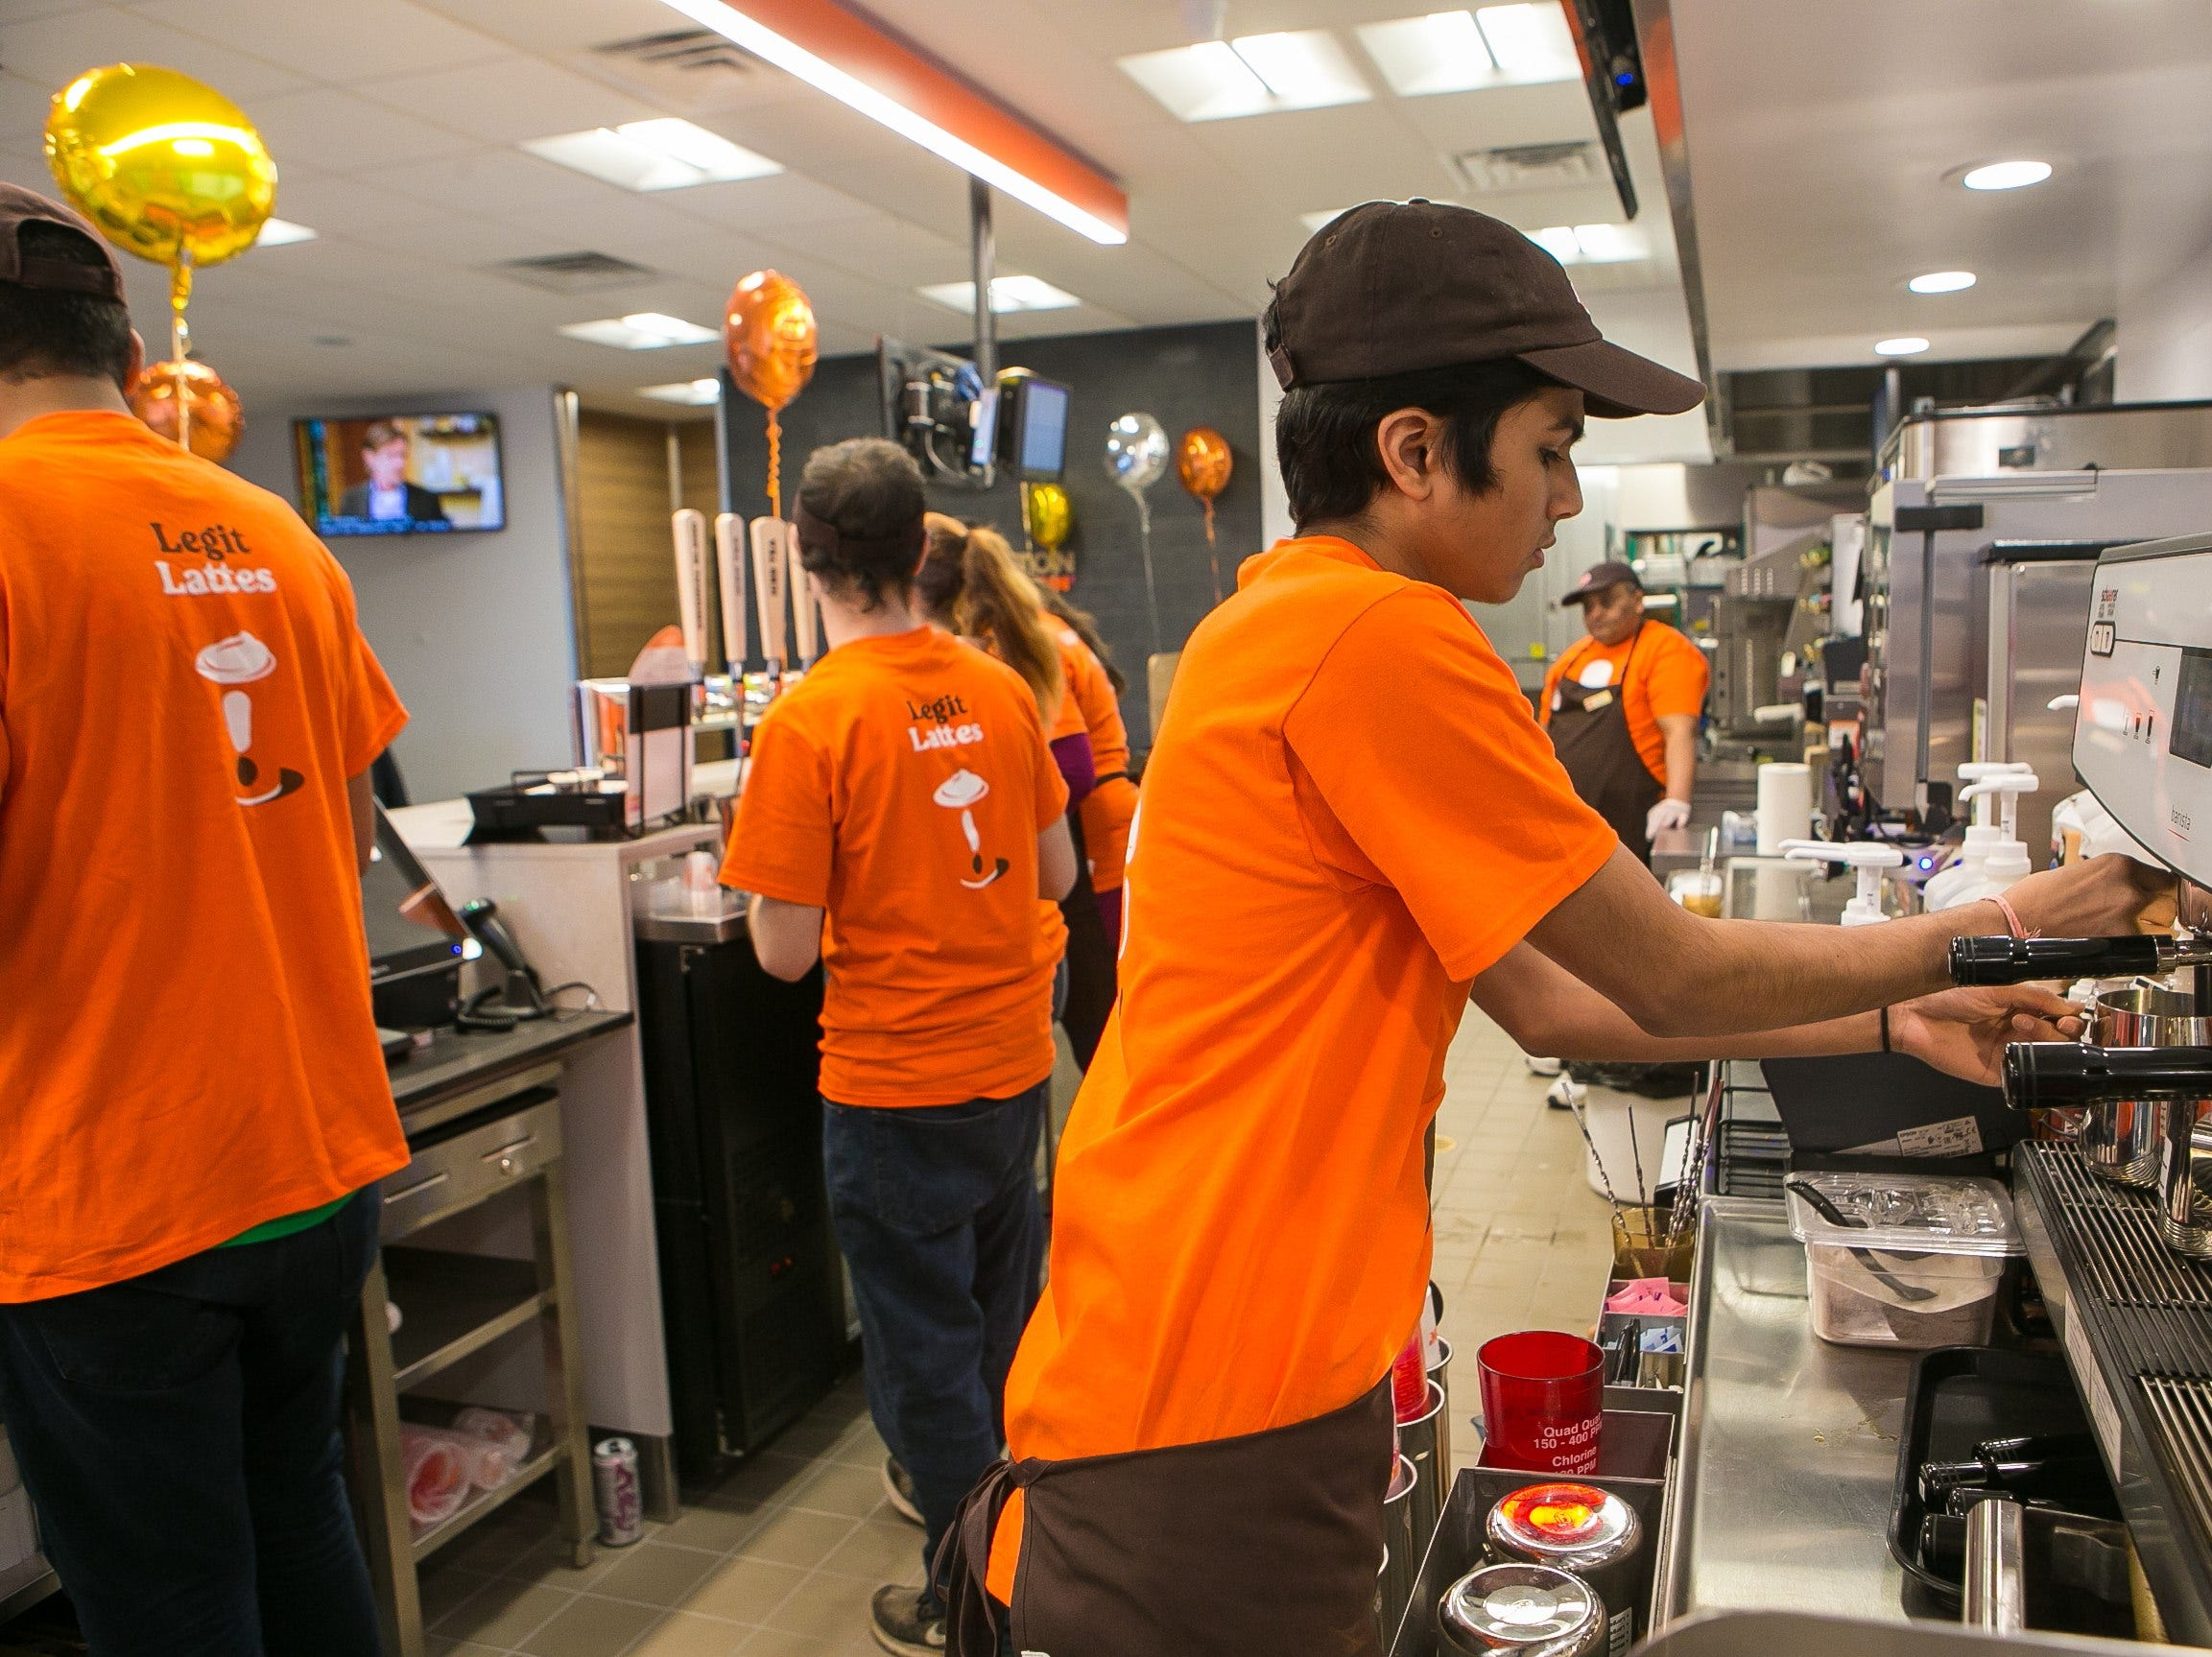 Neil Patel prepares an order on the new espresso machine. The Dunkin' chain, formerly known as Dunkin' Donuts, has opened one of its first new 'concept' stores today in north Wilmington on Naamans Road.